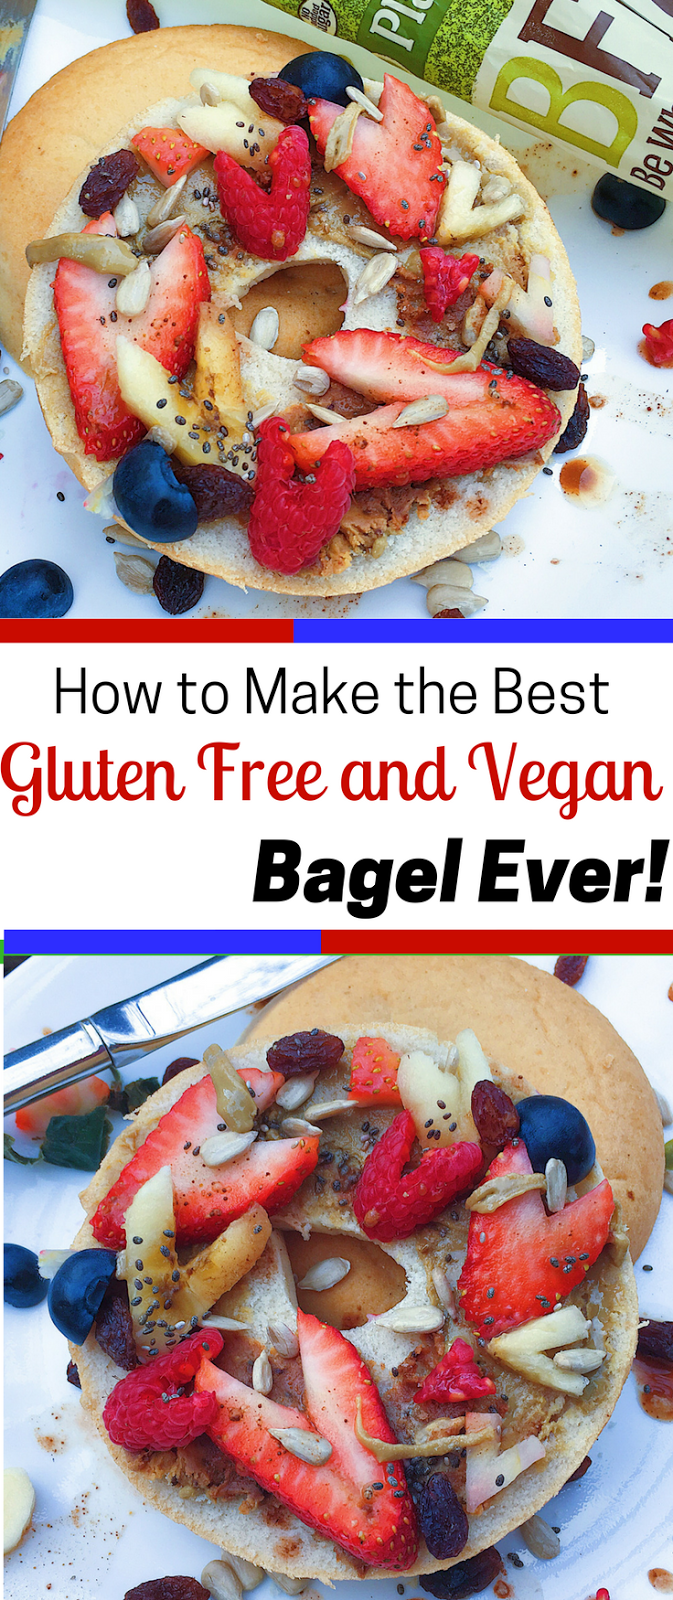 Berry-ful Gluten Free and Vegan Bagels (Allergy-Friendly)